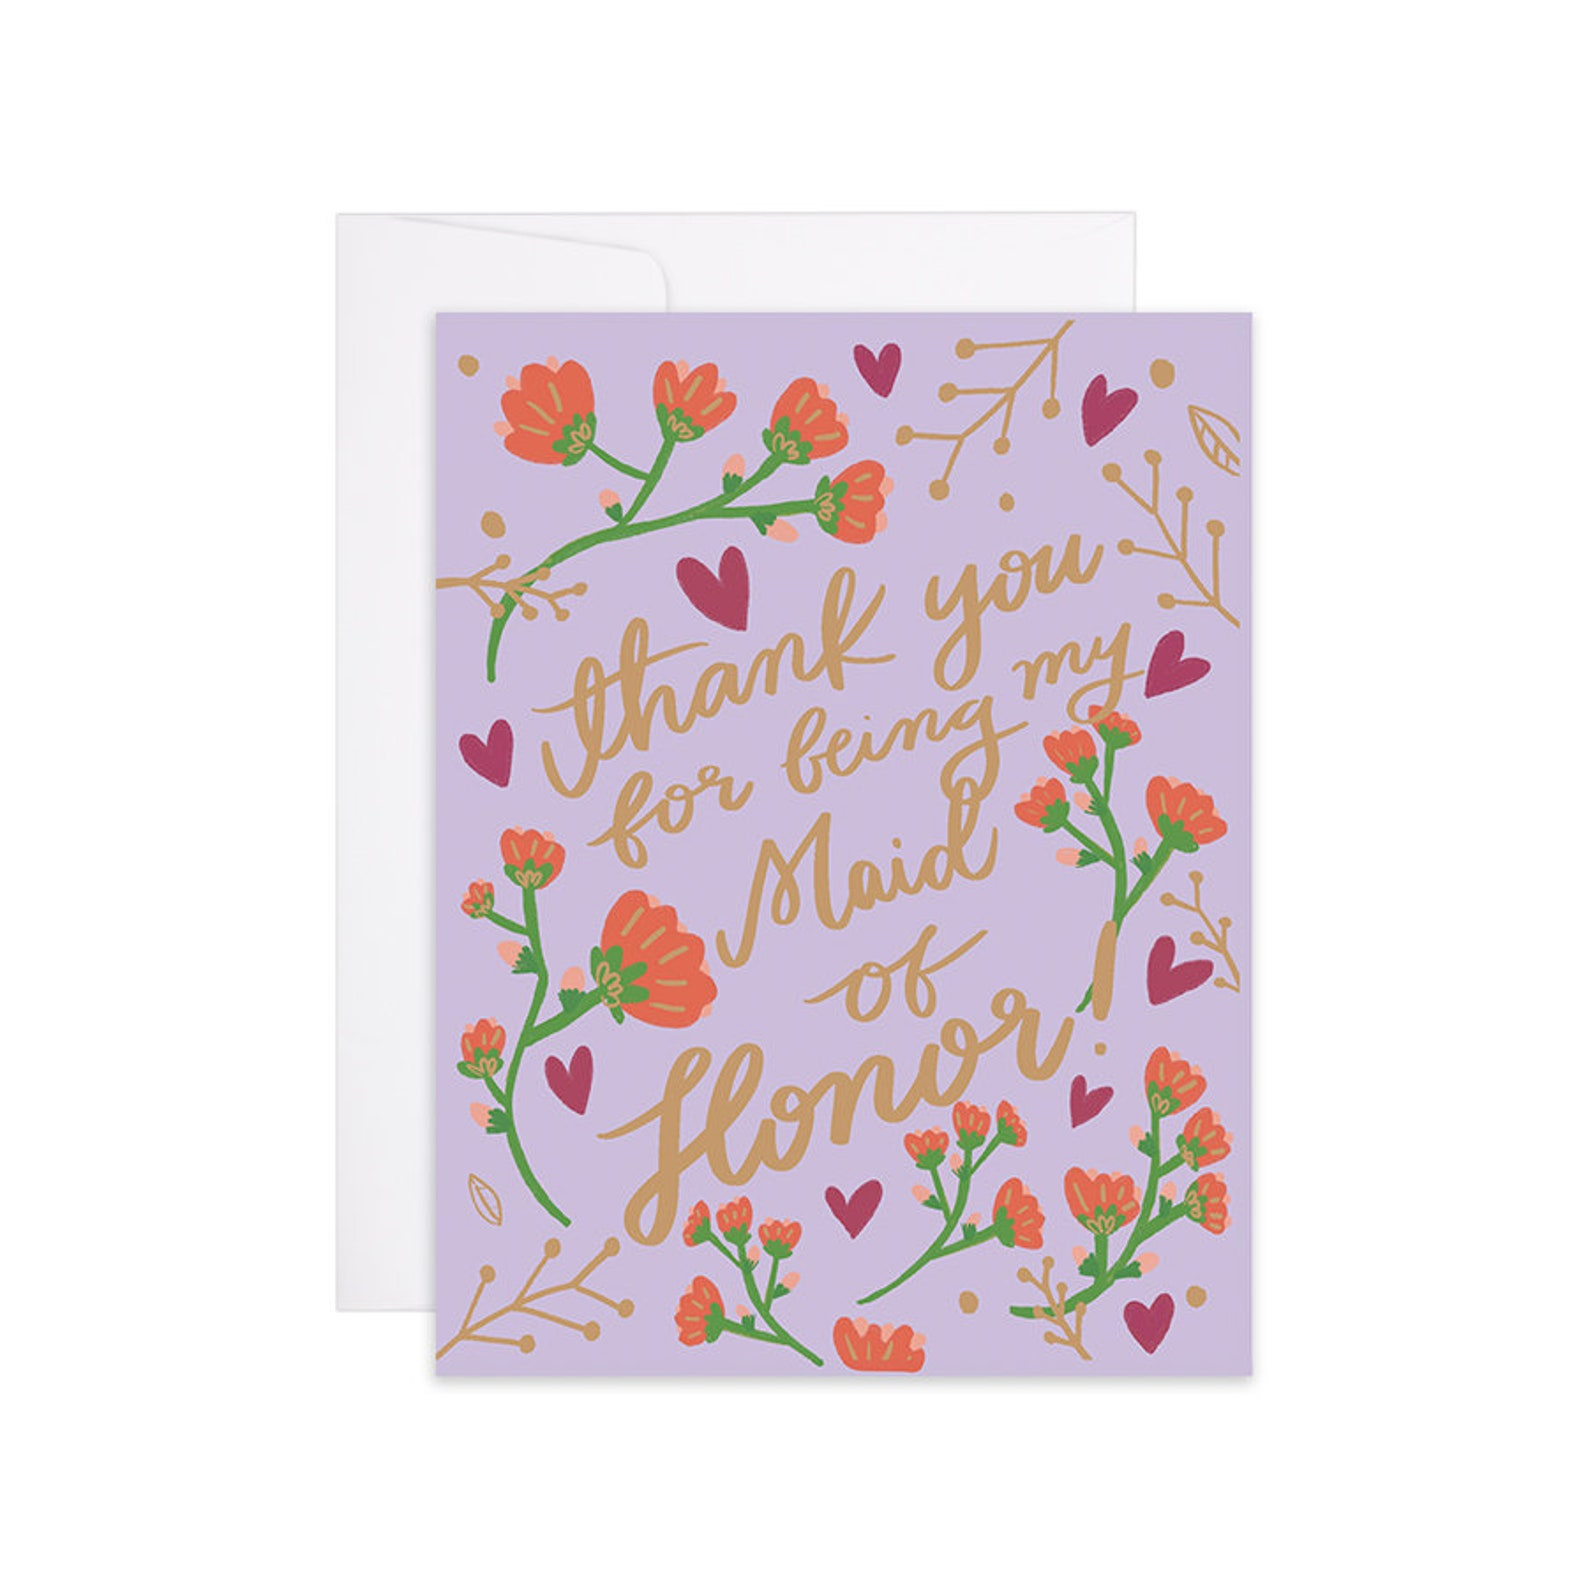 maid of honor card thank you for being my maid of honor  etsy